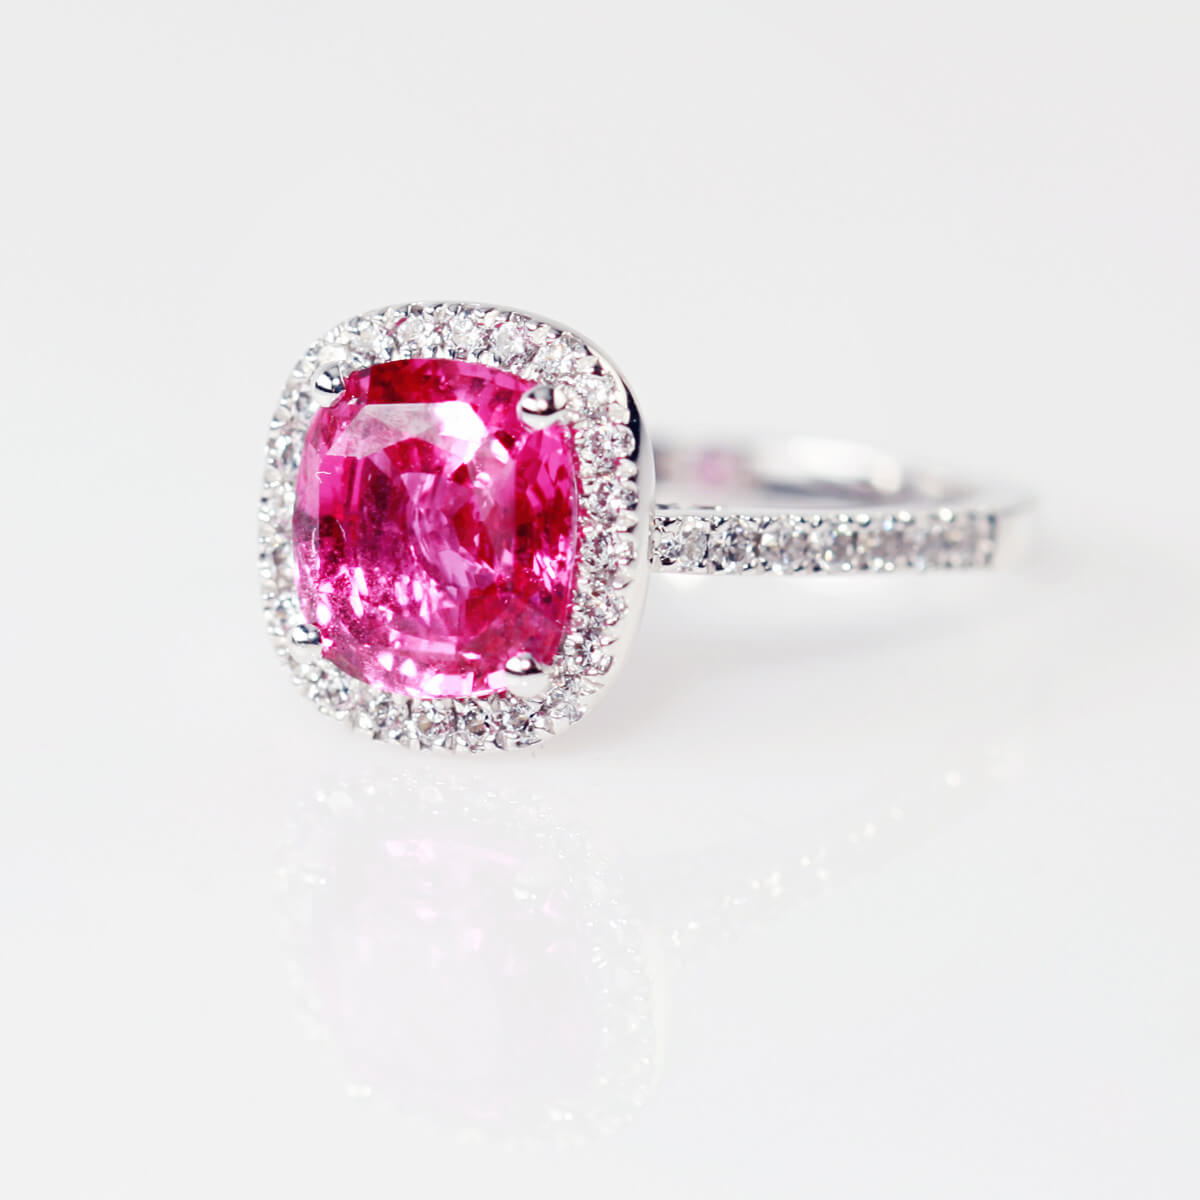 """Commission a stunning cocktail ring, both elegant and timeless"""